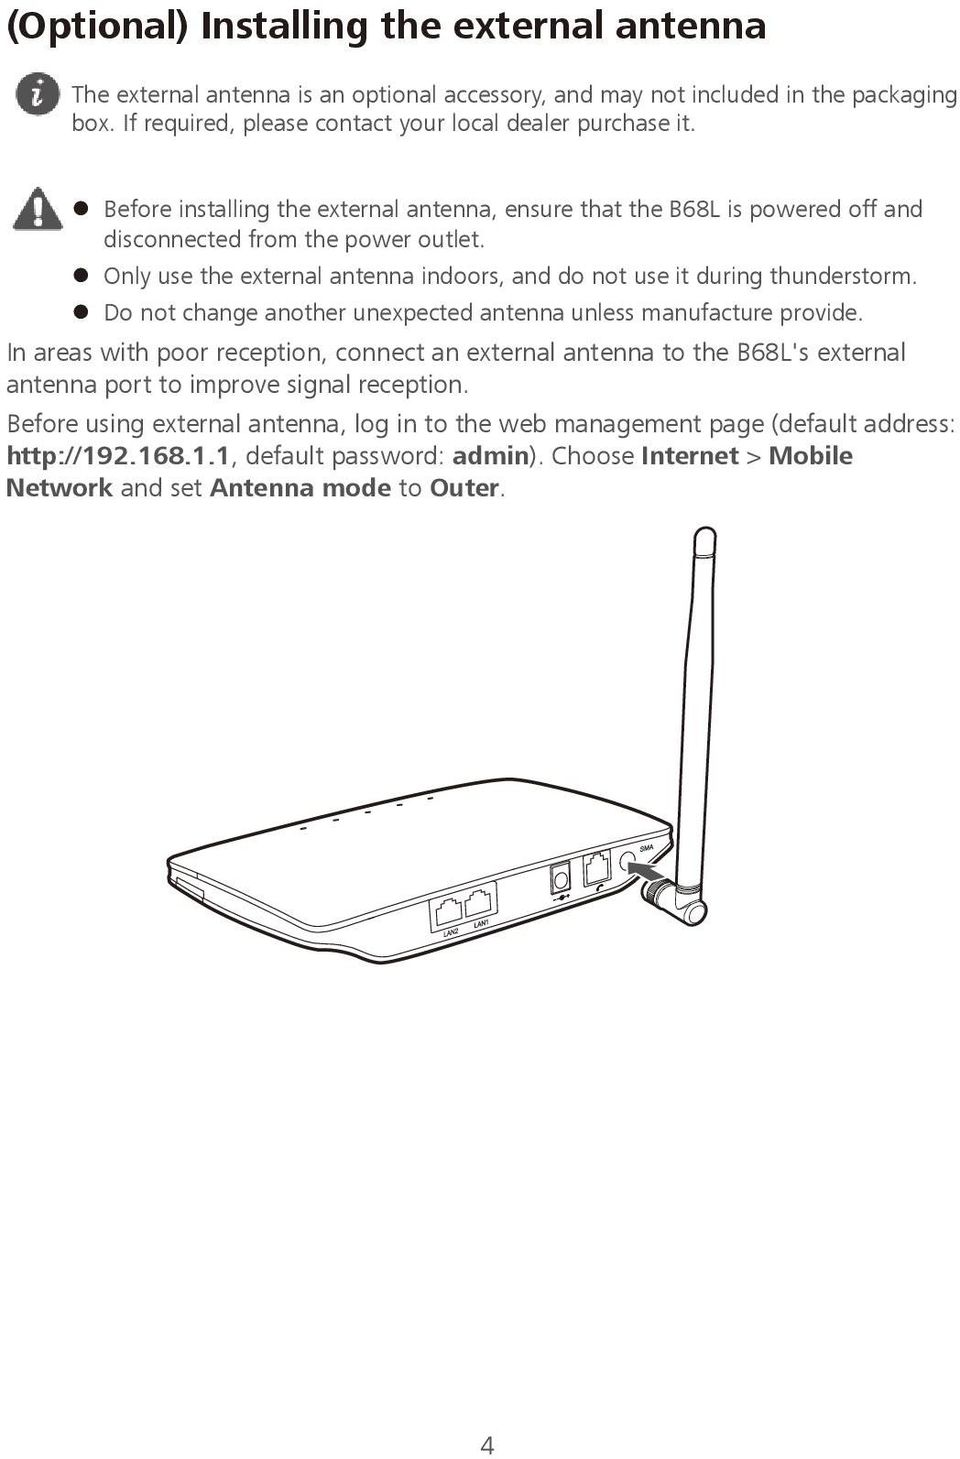 Do not change another unexpected antenna unless manufacture provide. In areas with poor reception, connect an external antenna to the B68L's external antenna port to improve signal reception.